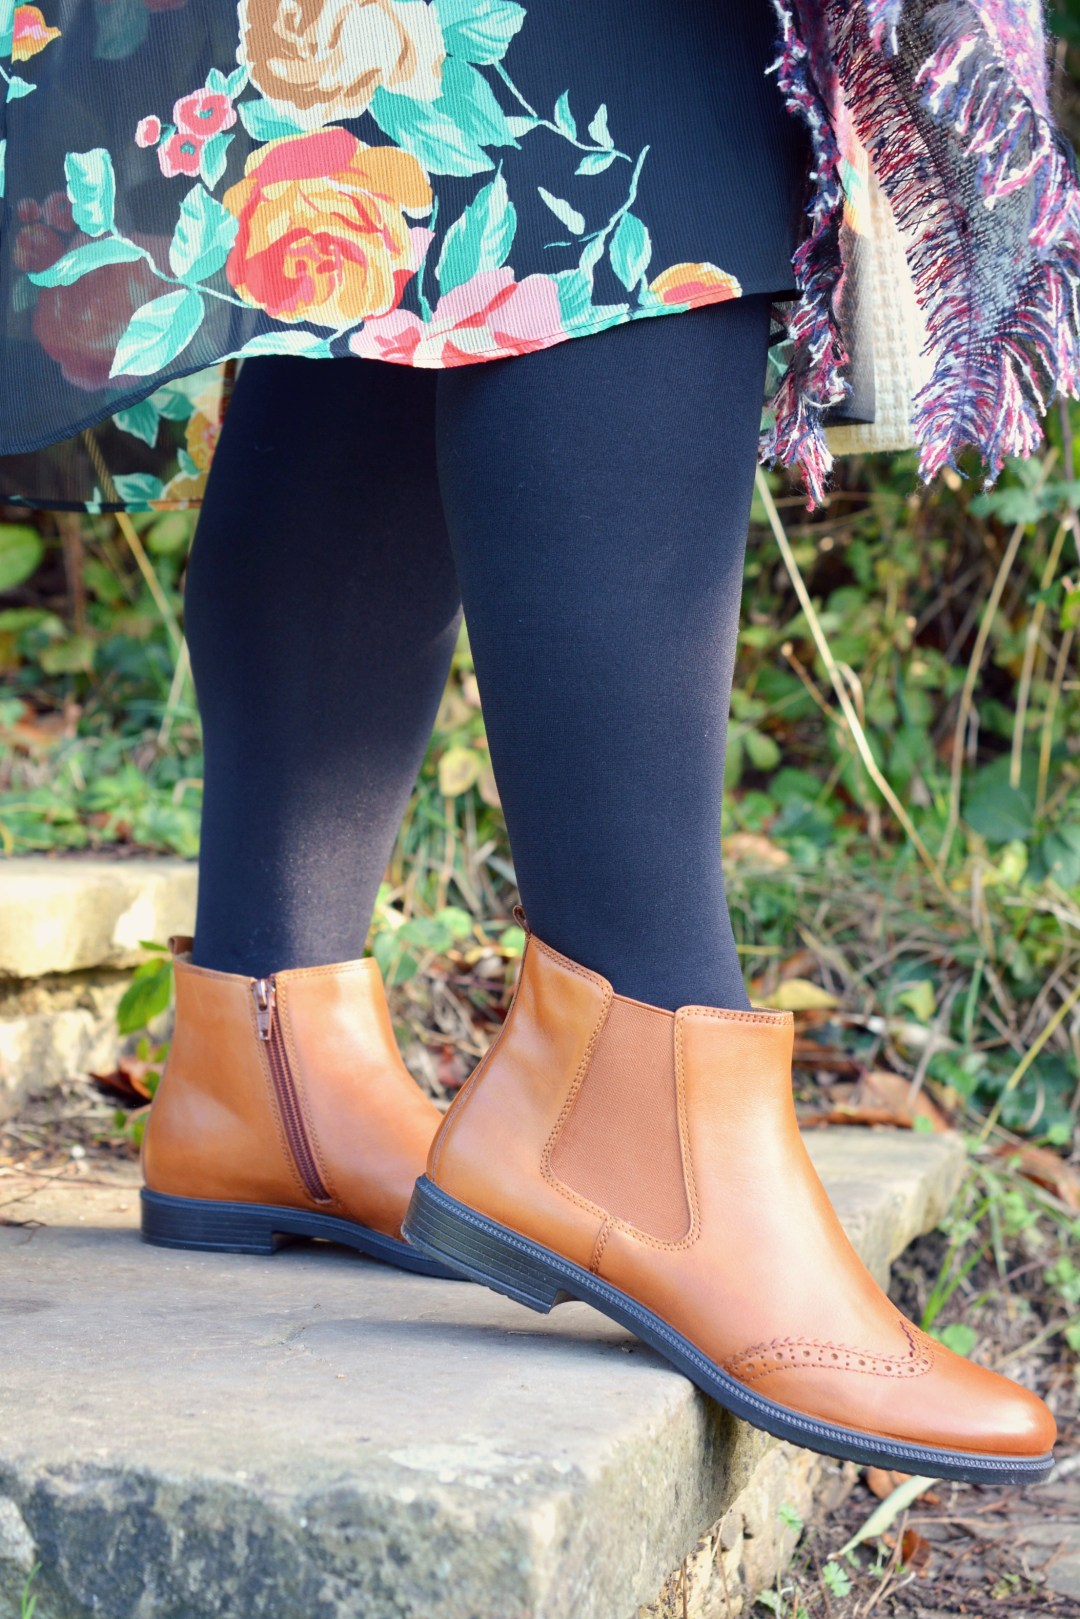 Boots That Make My Feet Feel Happy! Comfortable boots from Hotter